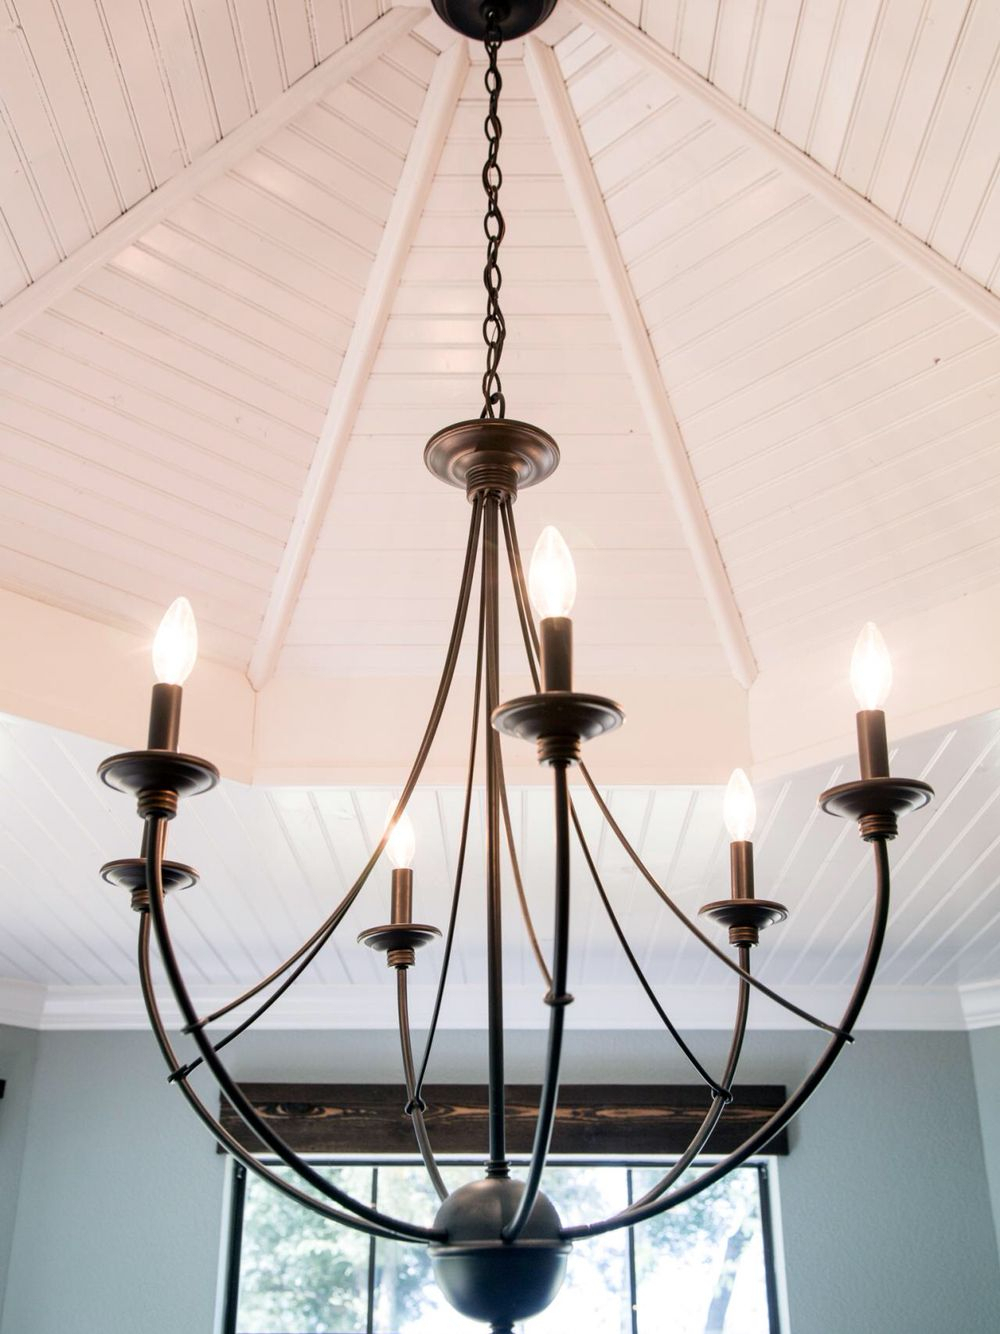 Chandelier From Fixer Upper For Entryway | Magnolia Farms With Gaines 9 Light Candle Style Chandeliers (View 22 of 30)